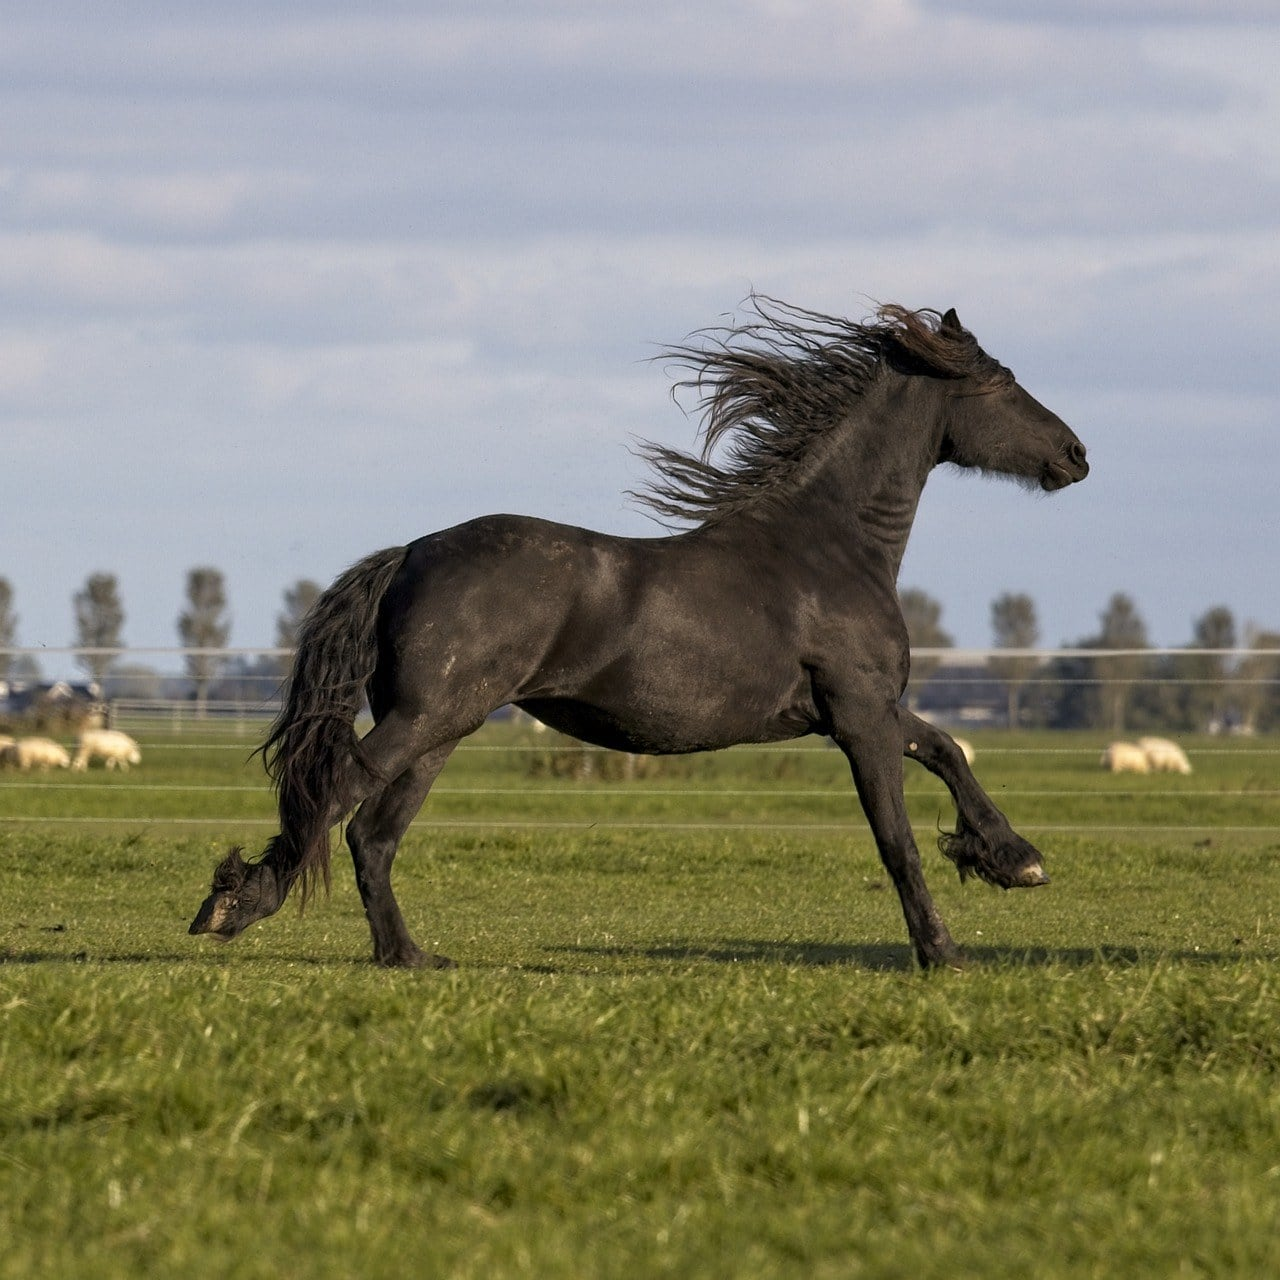 Friesian Horse galloping